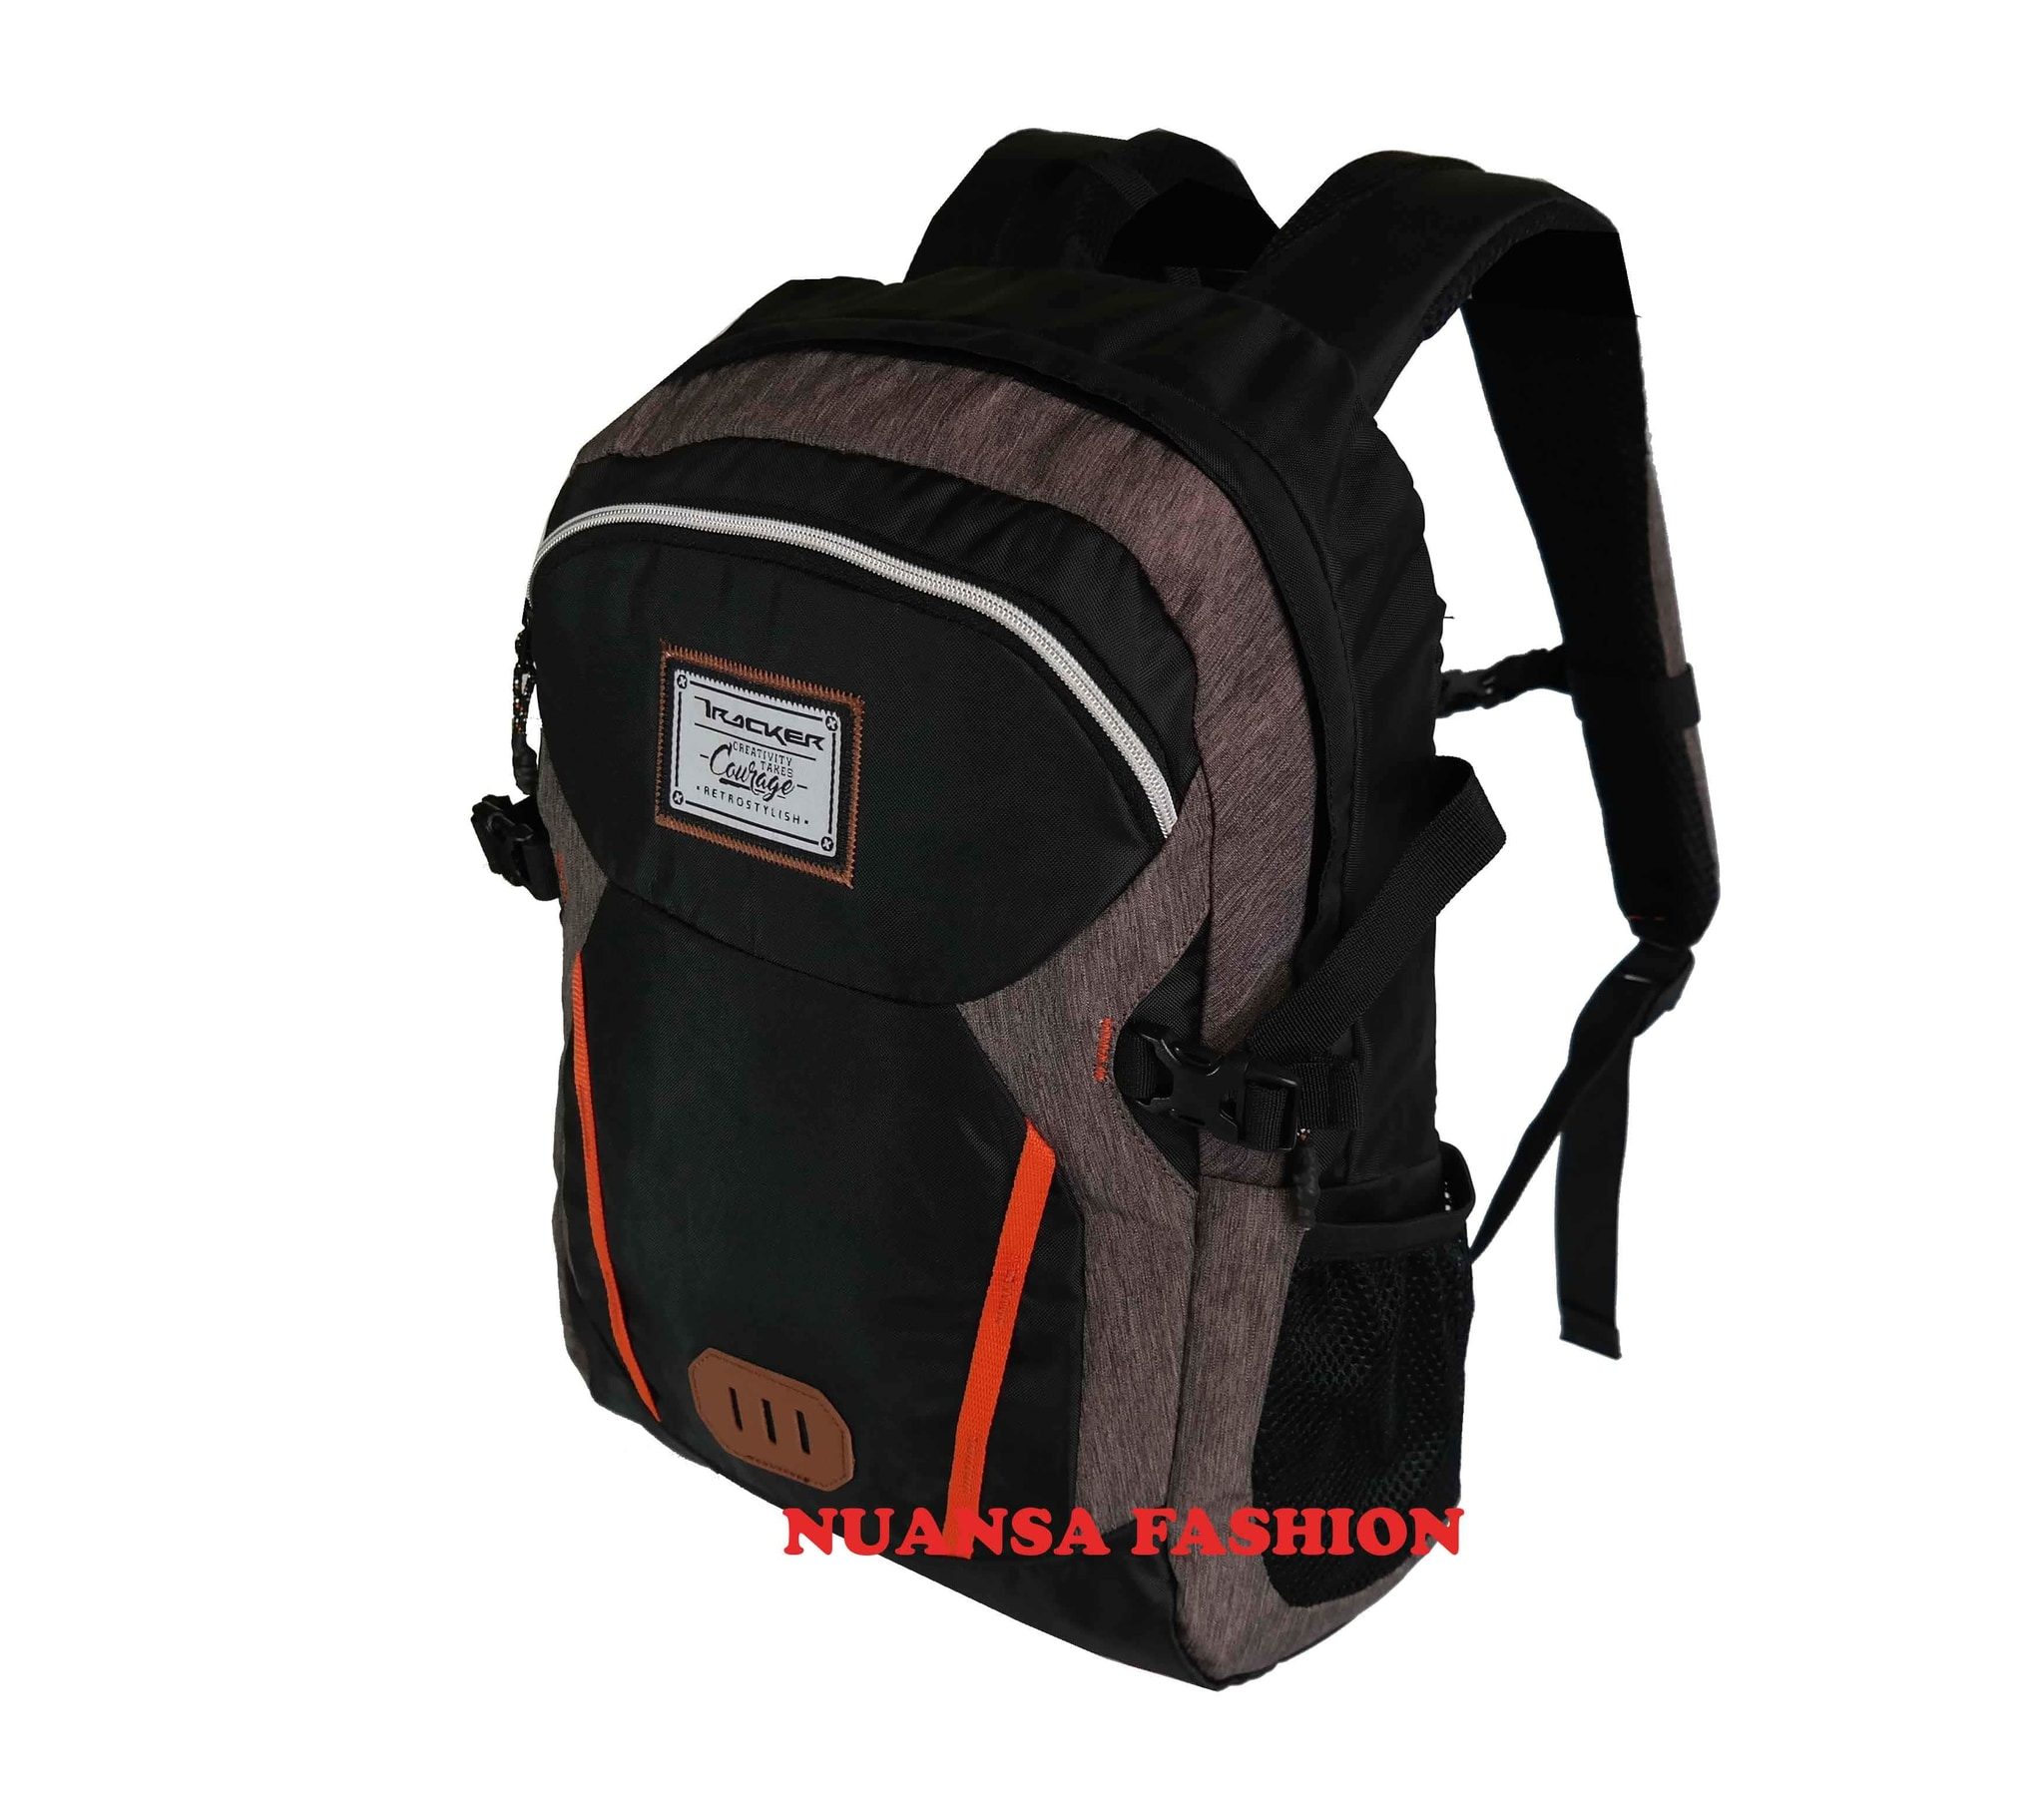 Jual Backpack Tas Ransel Laptop Tracker Platinum 78642 Original ... 1e5f9bbeeb